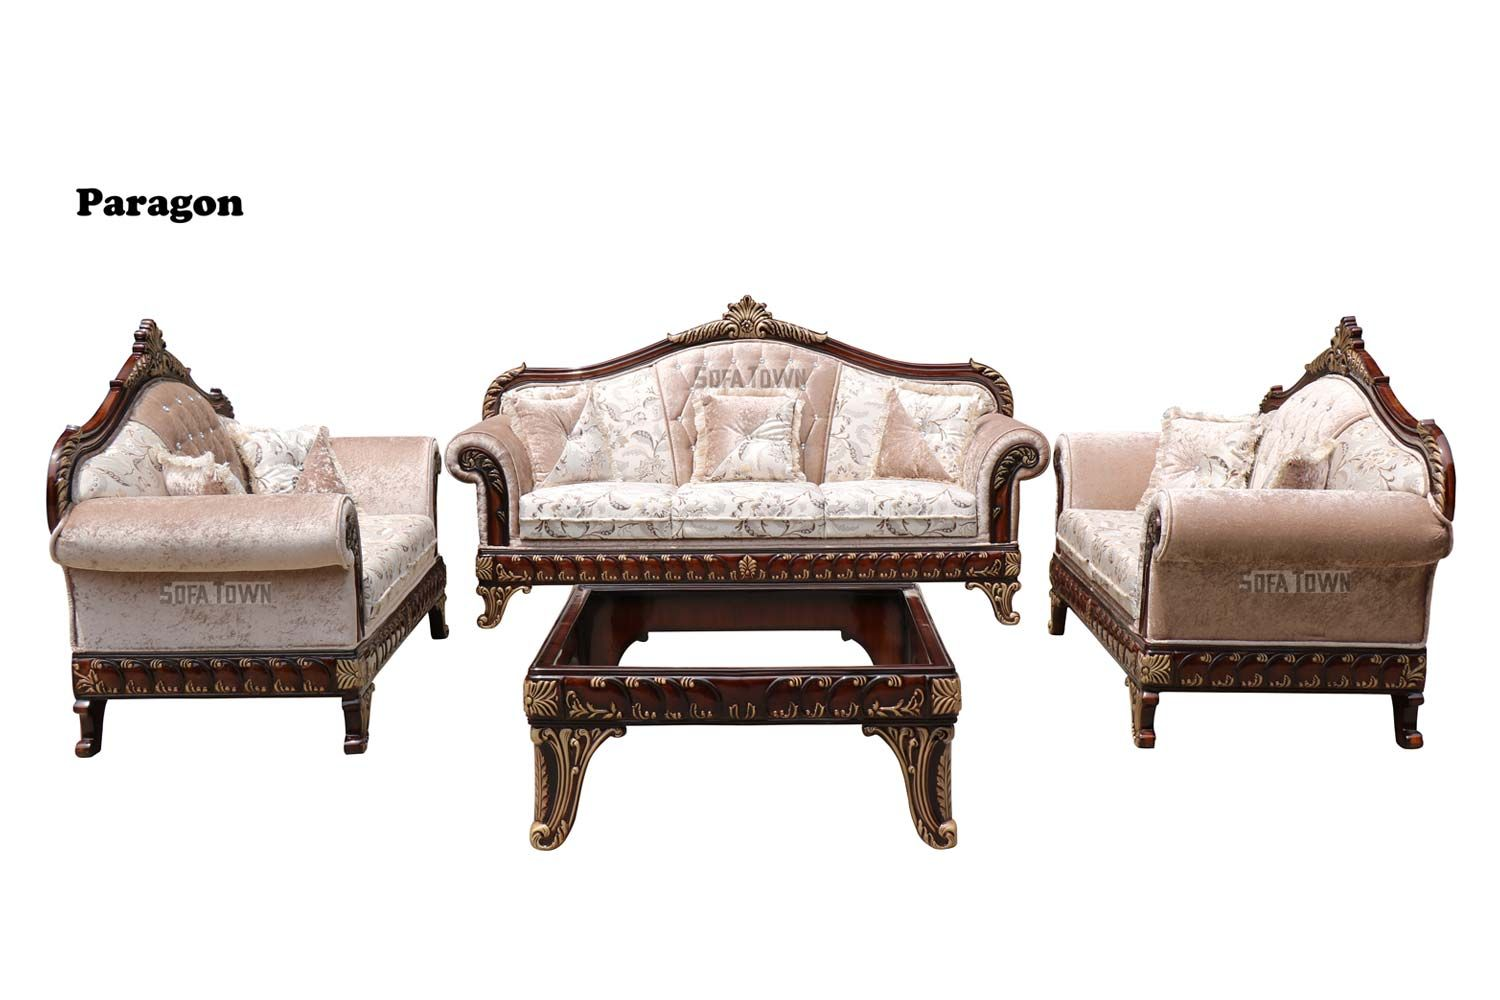 Buy Paragon Sofa Online Store Kirti Nagar Paragon Suppliers Delhi Mumbai Chennai Bangalore Pune In 2020 Sofa Online Carved Sofa Paragon